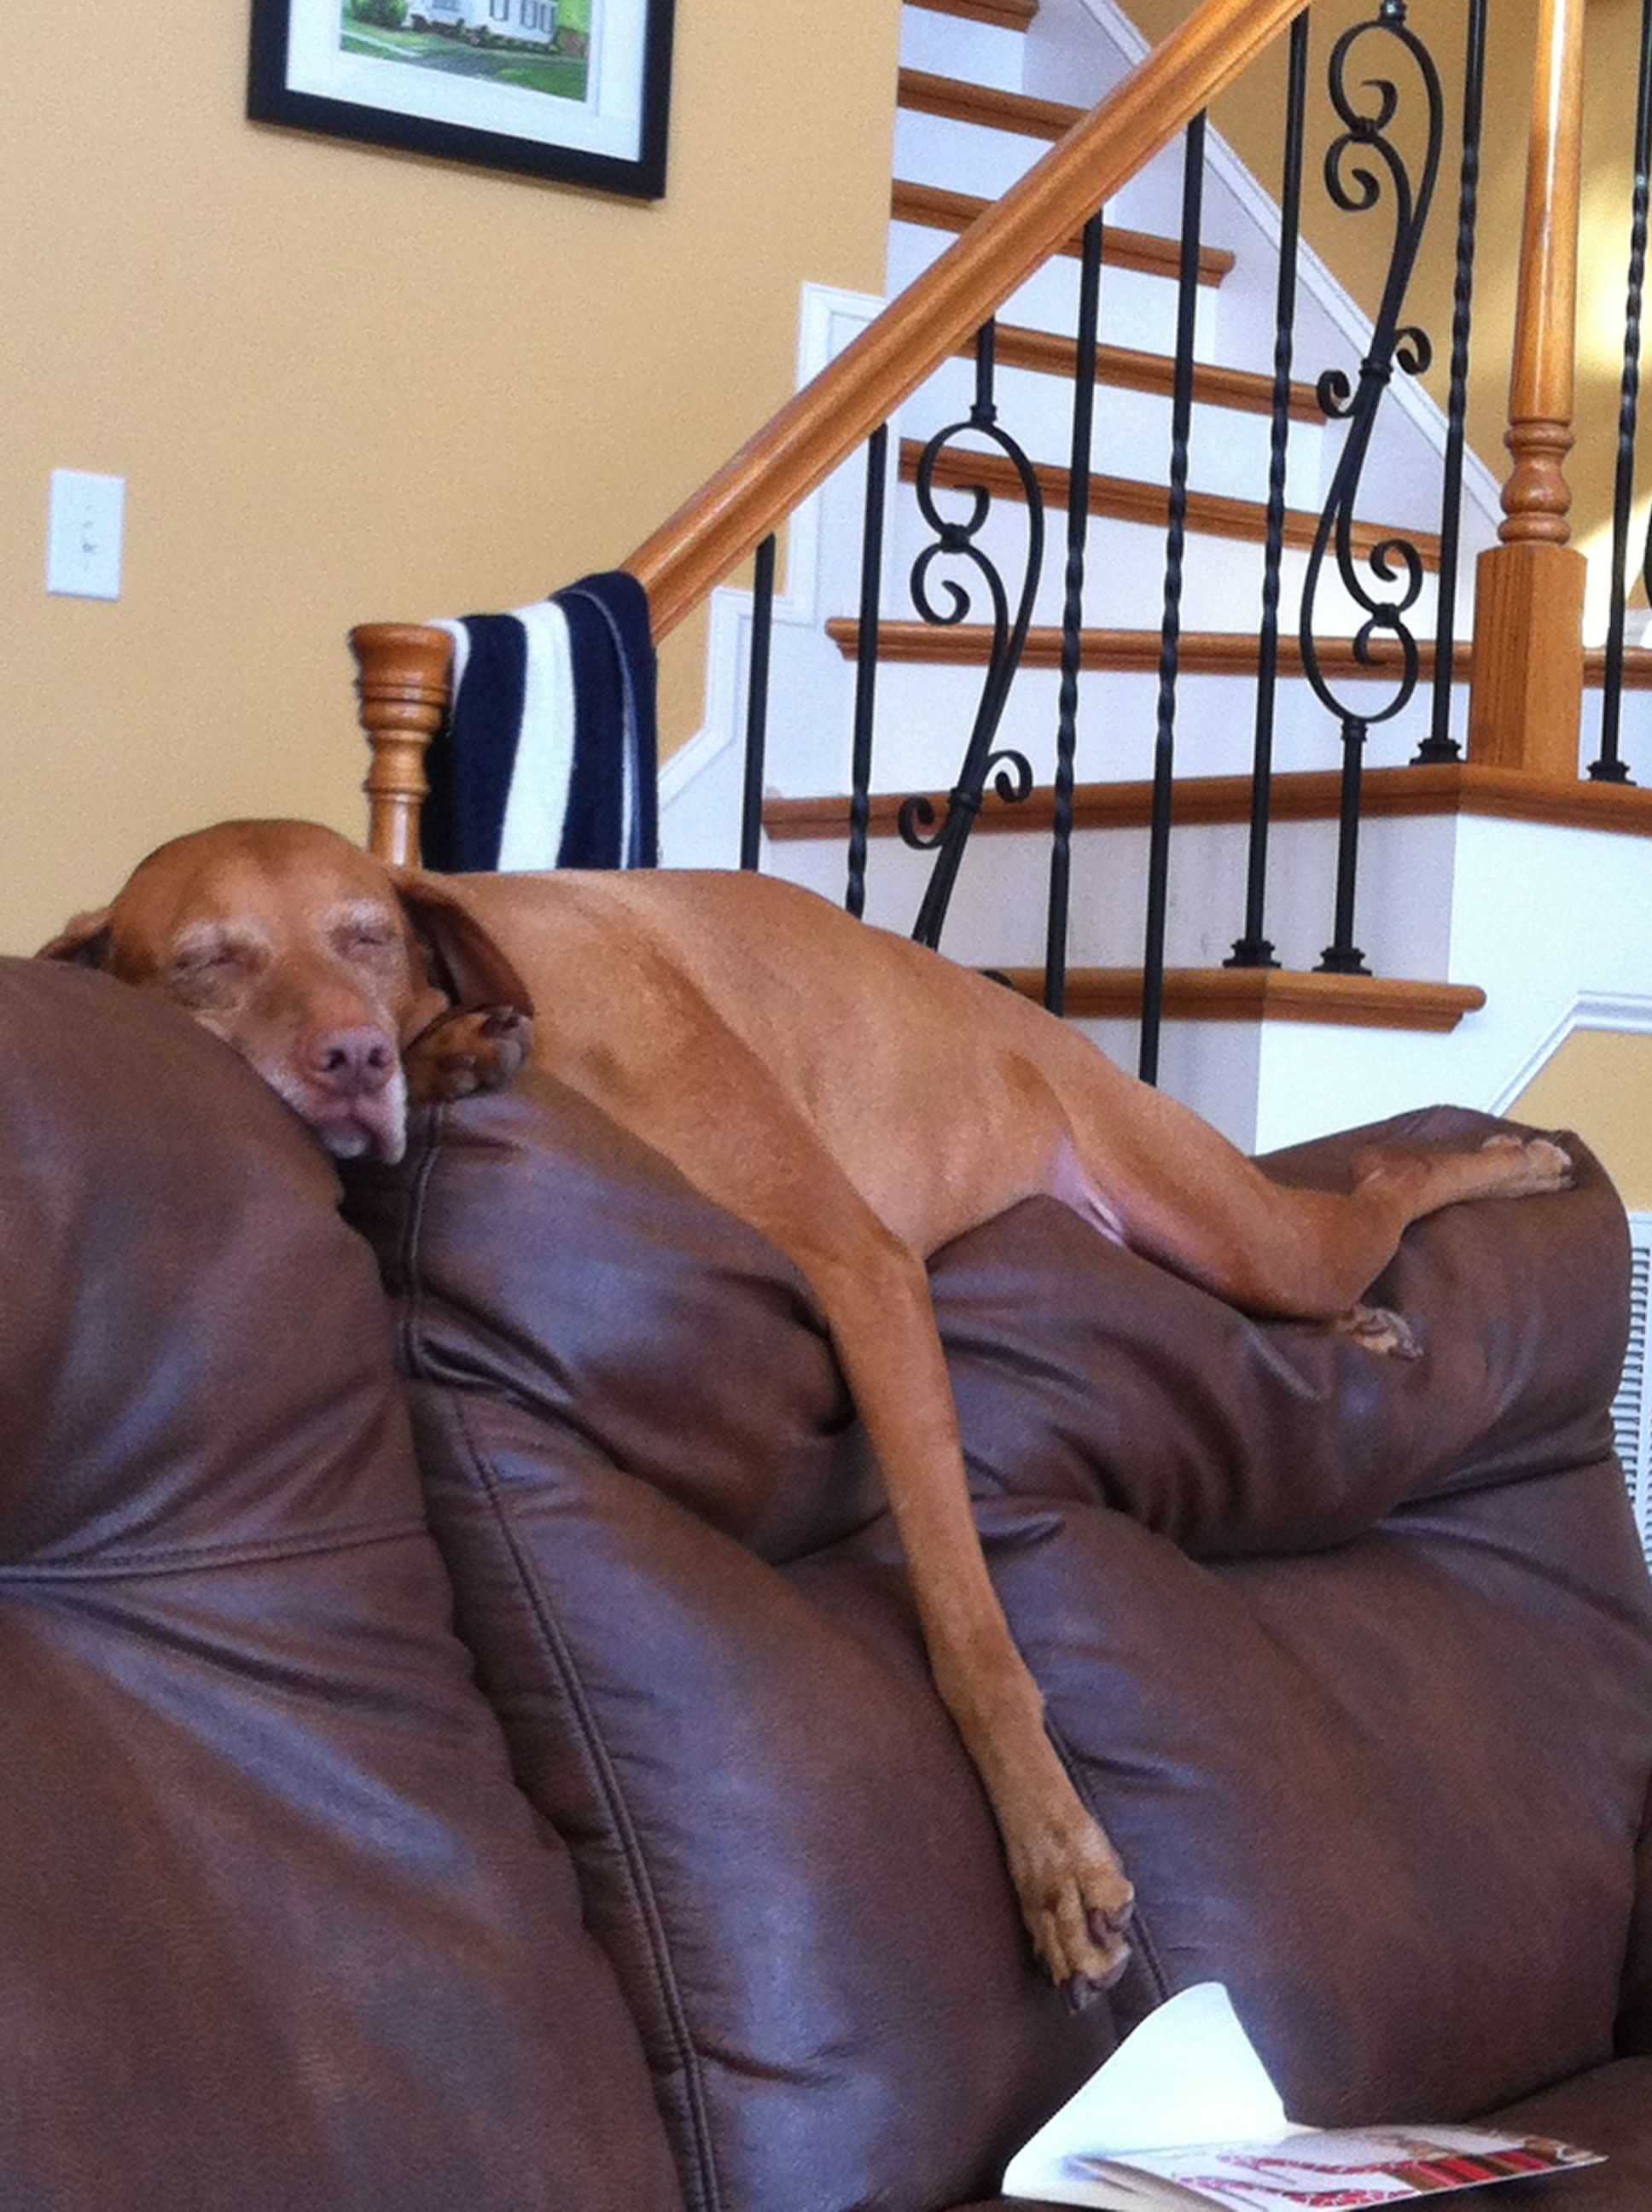 For every couch, a lazy doggie! #dogs #pets #Vizslas Facebook.com ...